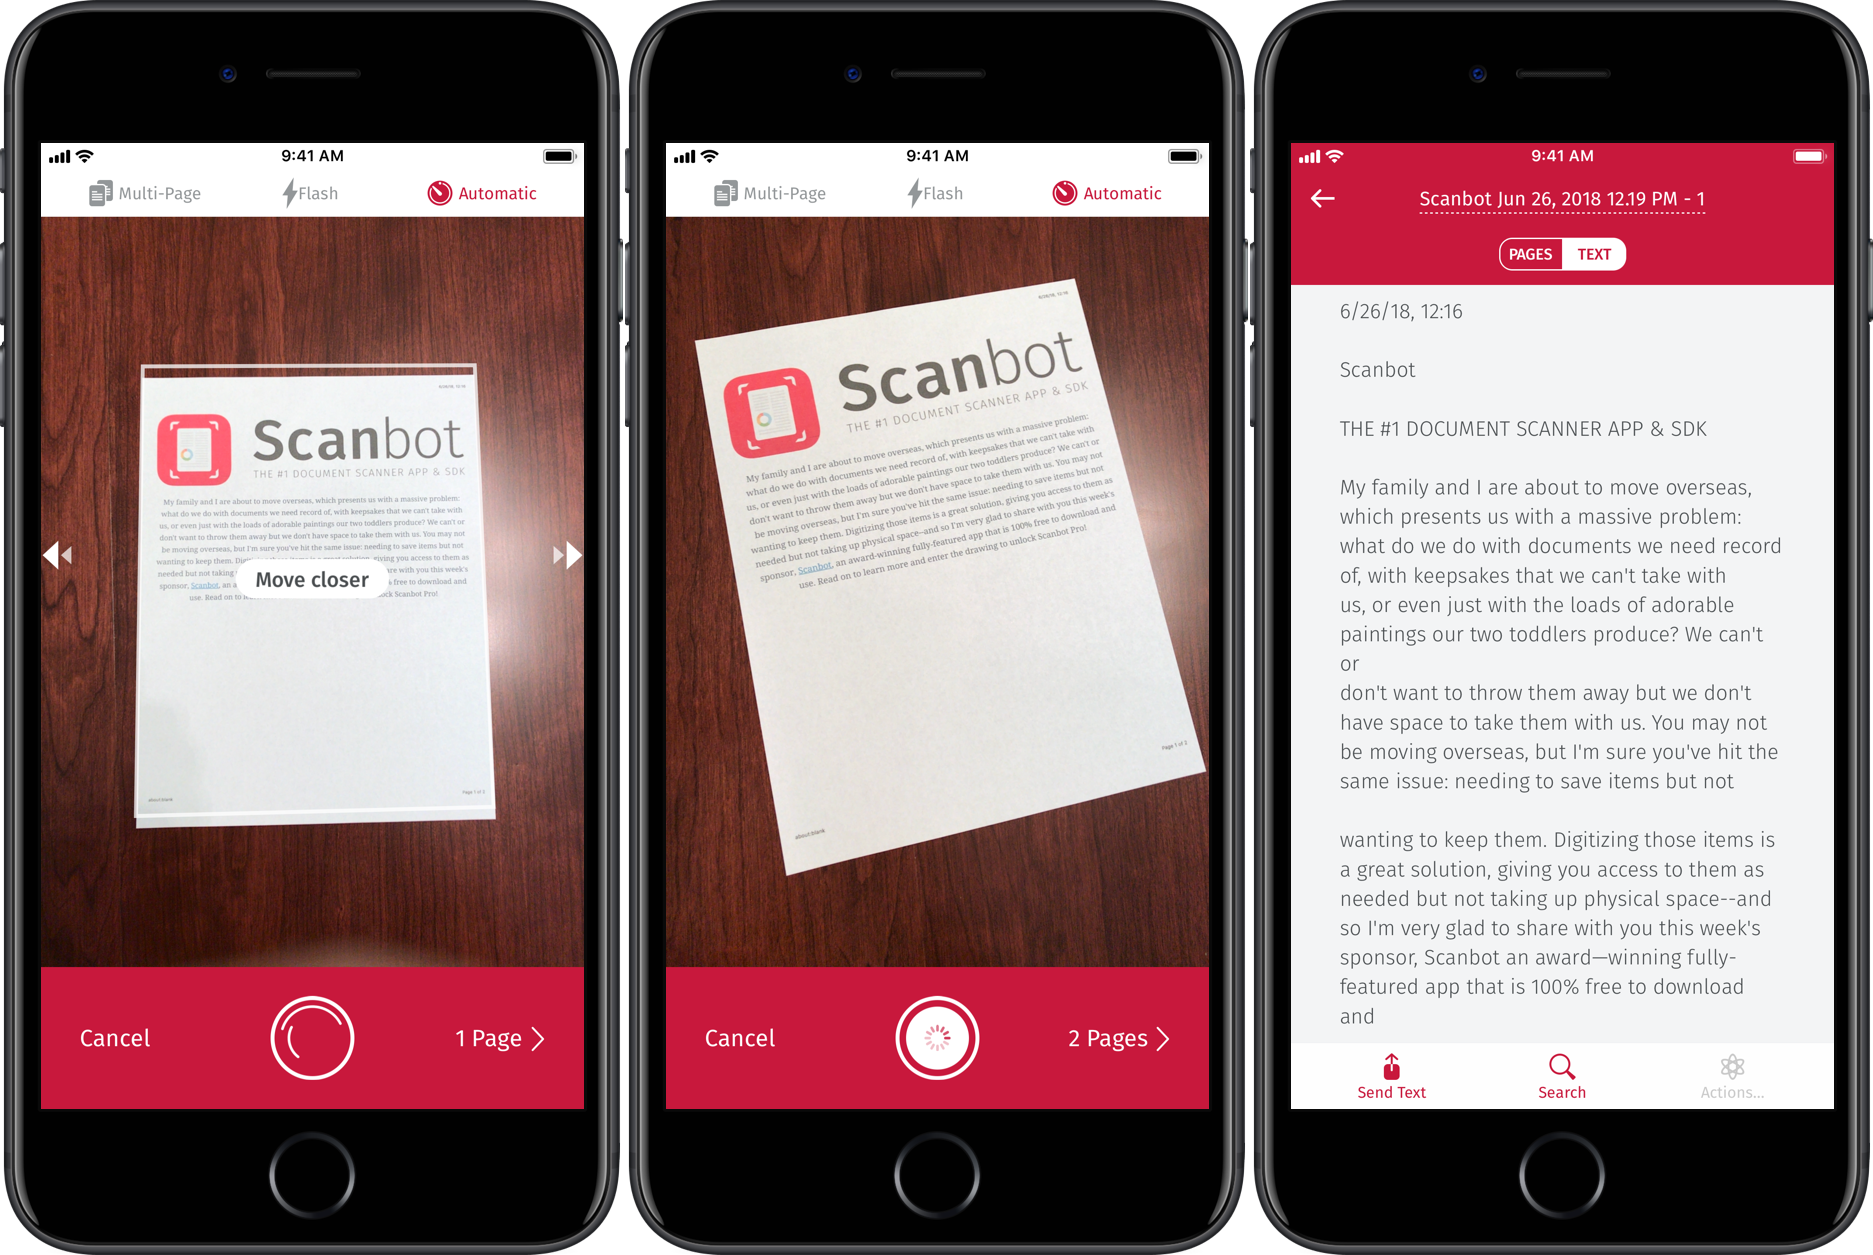 App giveaway: Scanbot is an award-winning scan app with OCR, markup